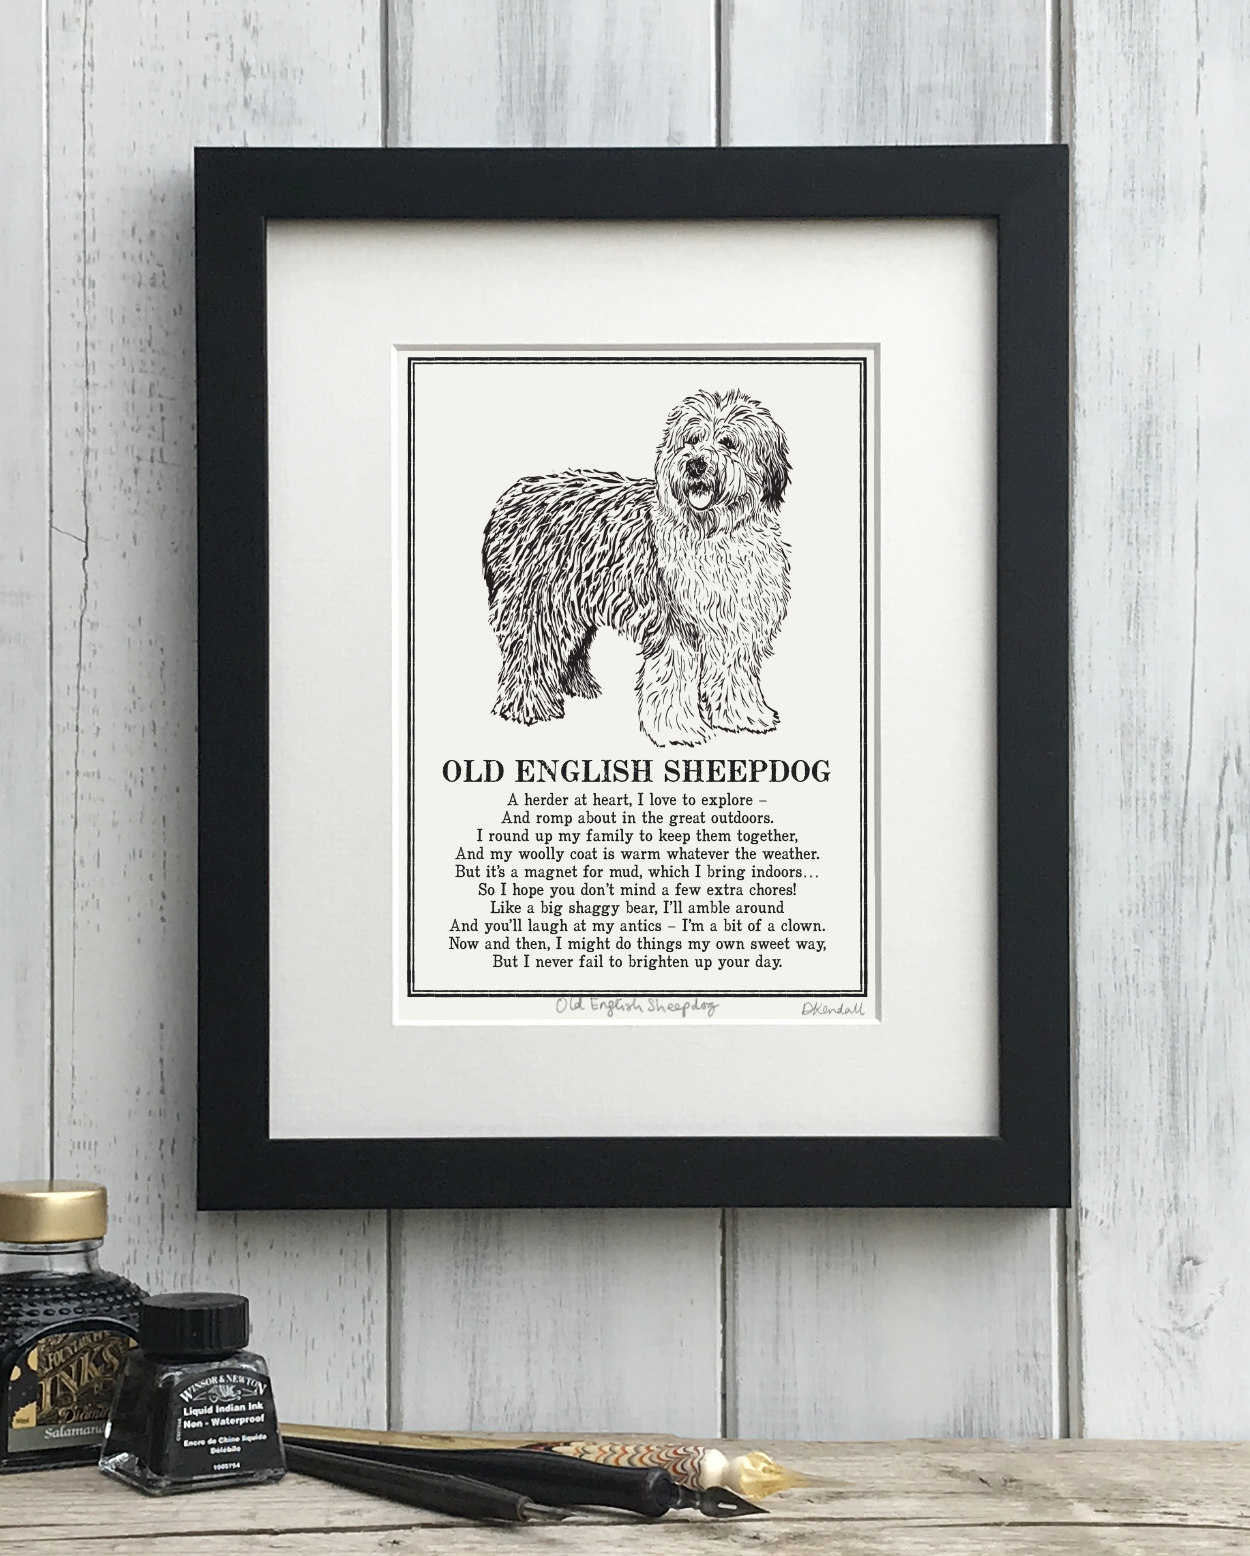 Old English Sheepdog Doggerel Illustrated Poem Art Print | The Enlightened Hound